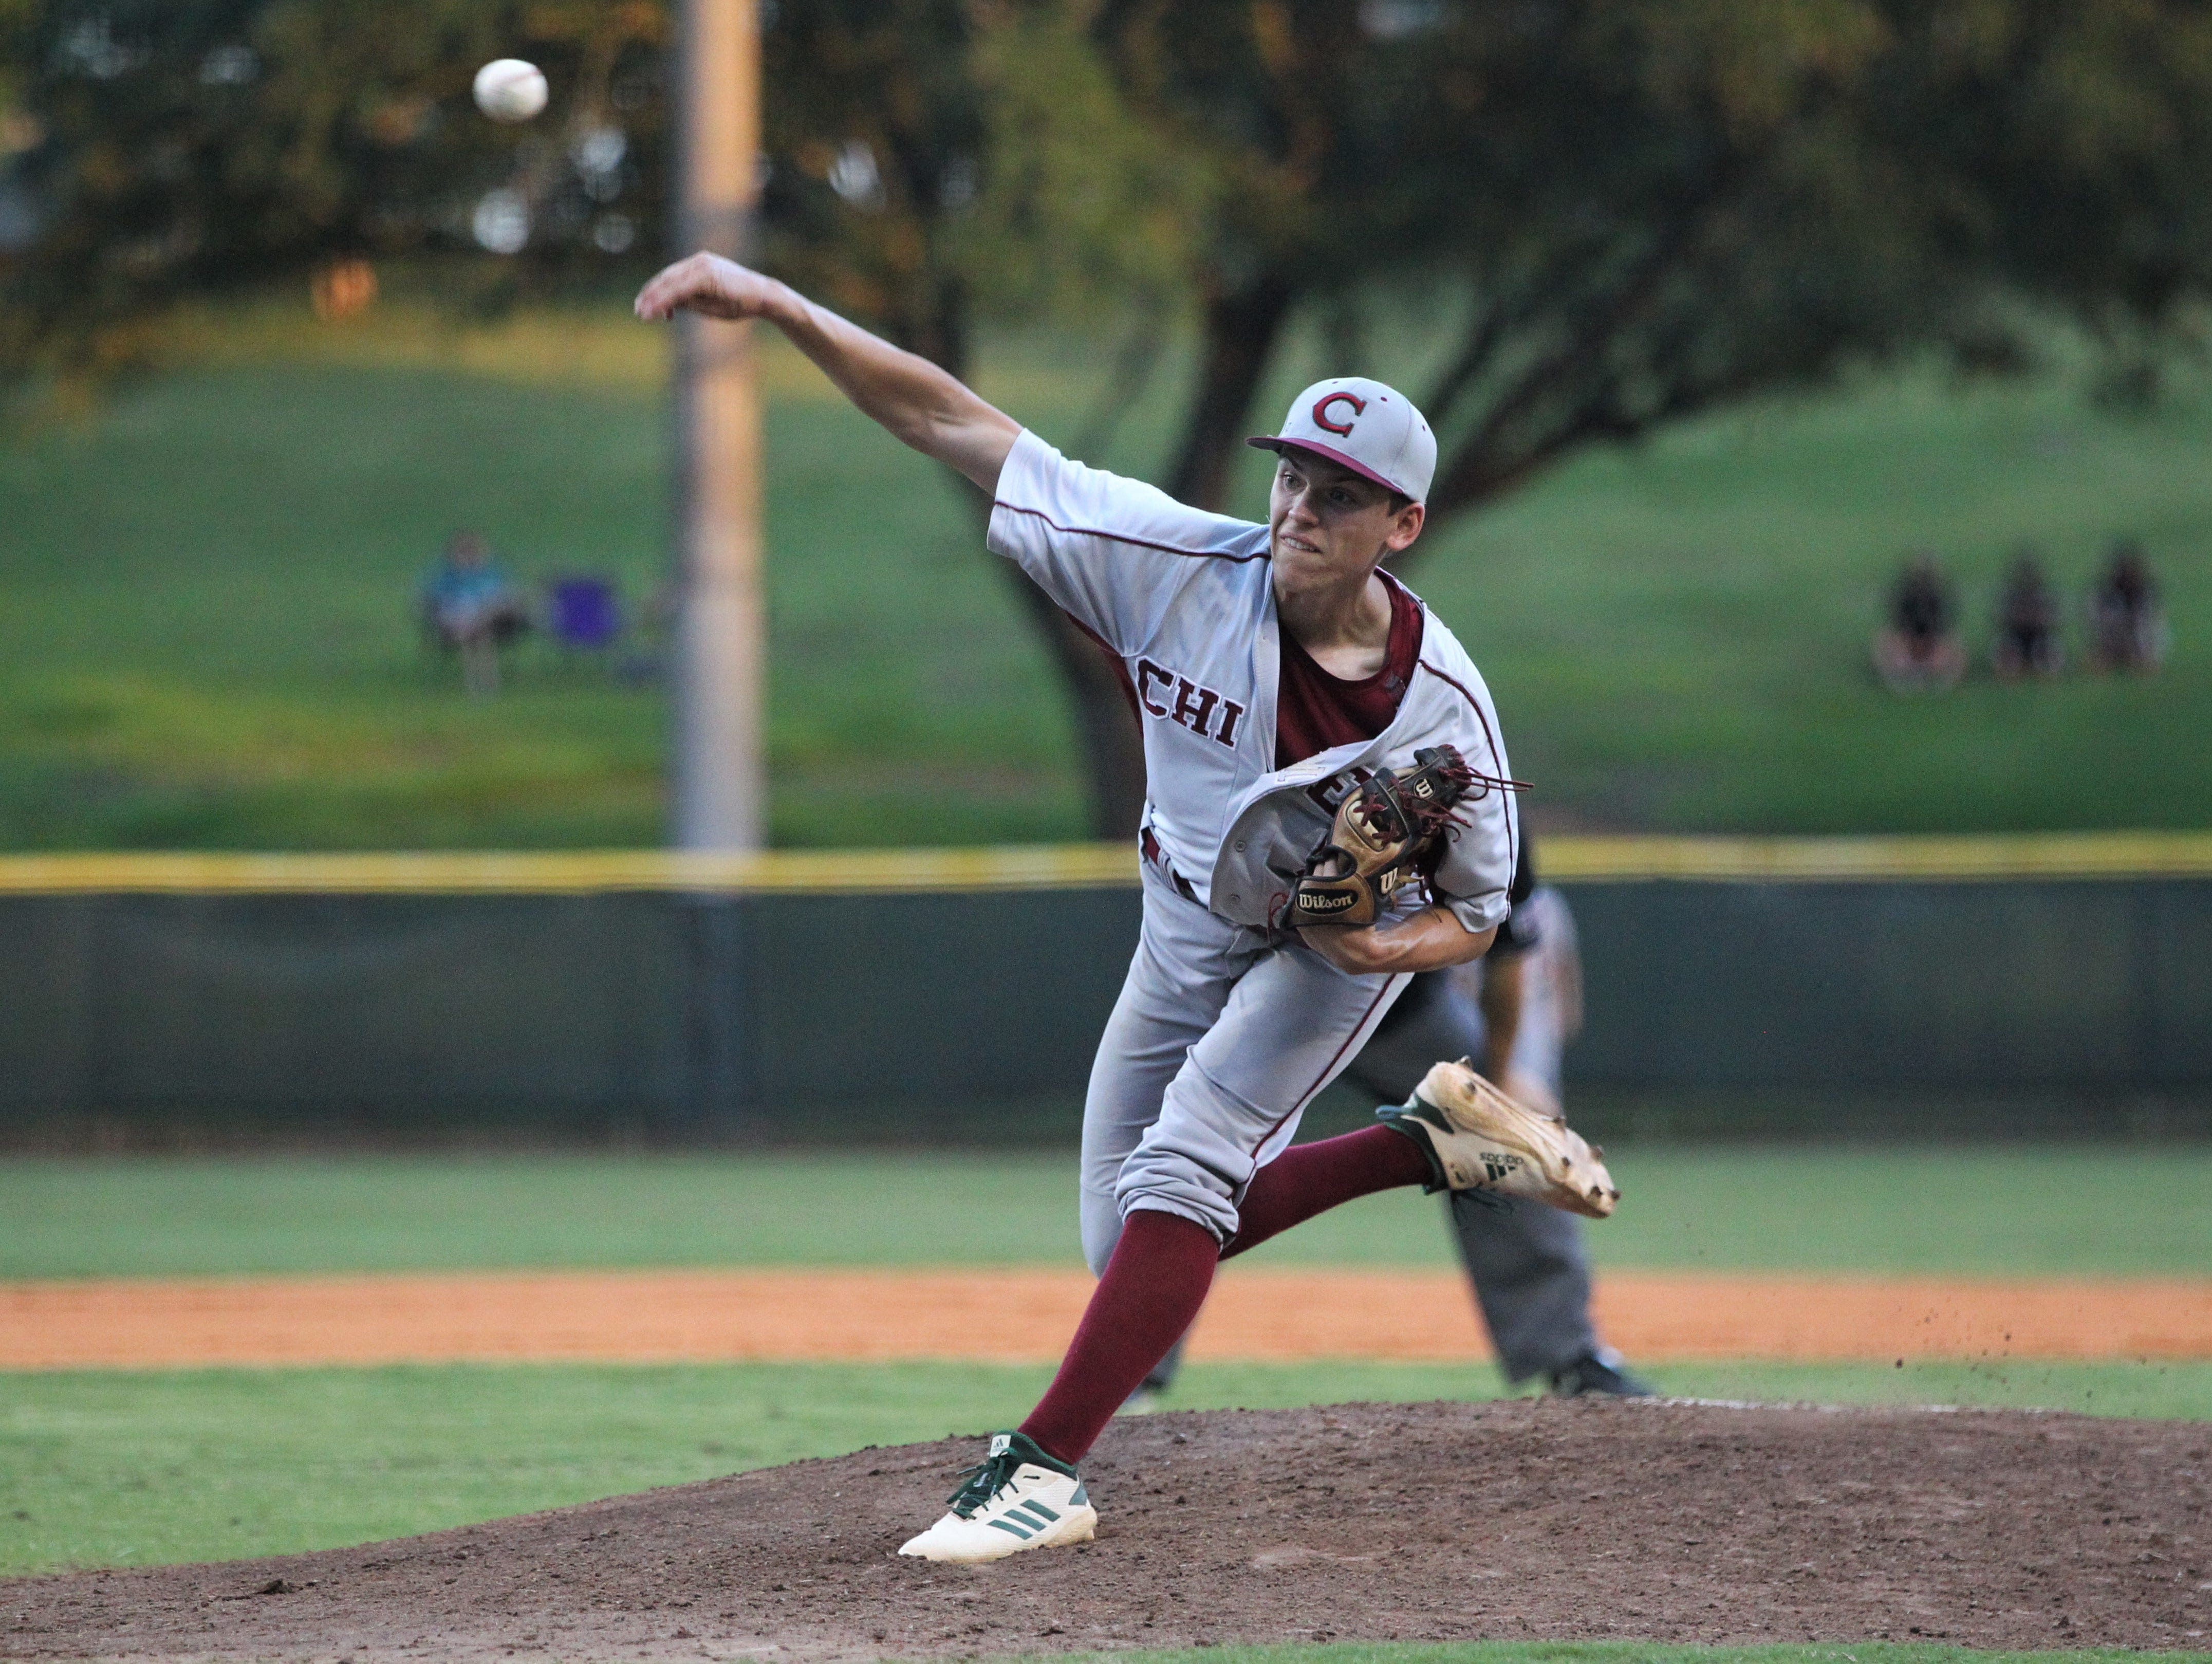 Chiles senior Ben Gurley pitches as Lincoln baseball beat Chiles 5-4  in 10 innings during a District 2-8A championship game on Thursday, May 9, 2019.